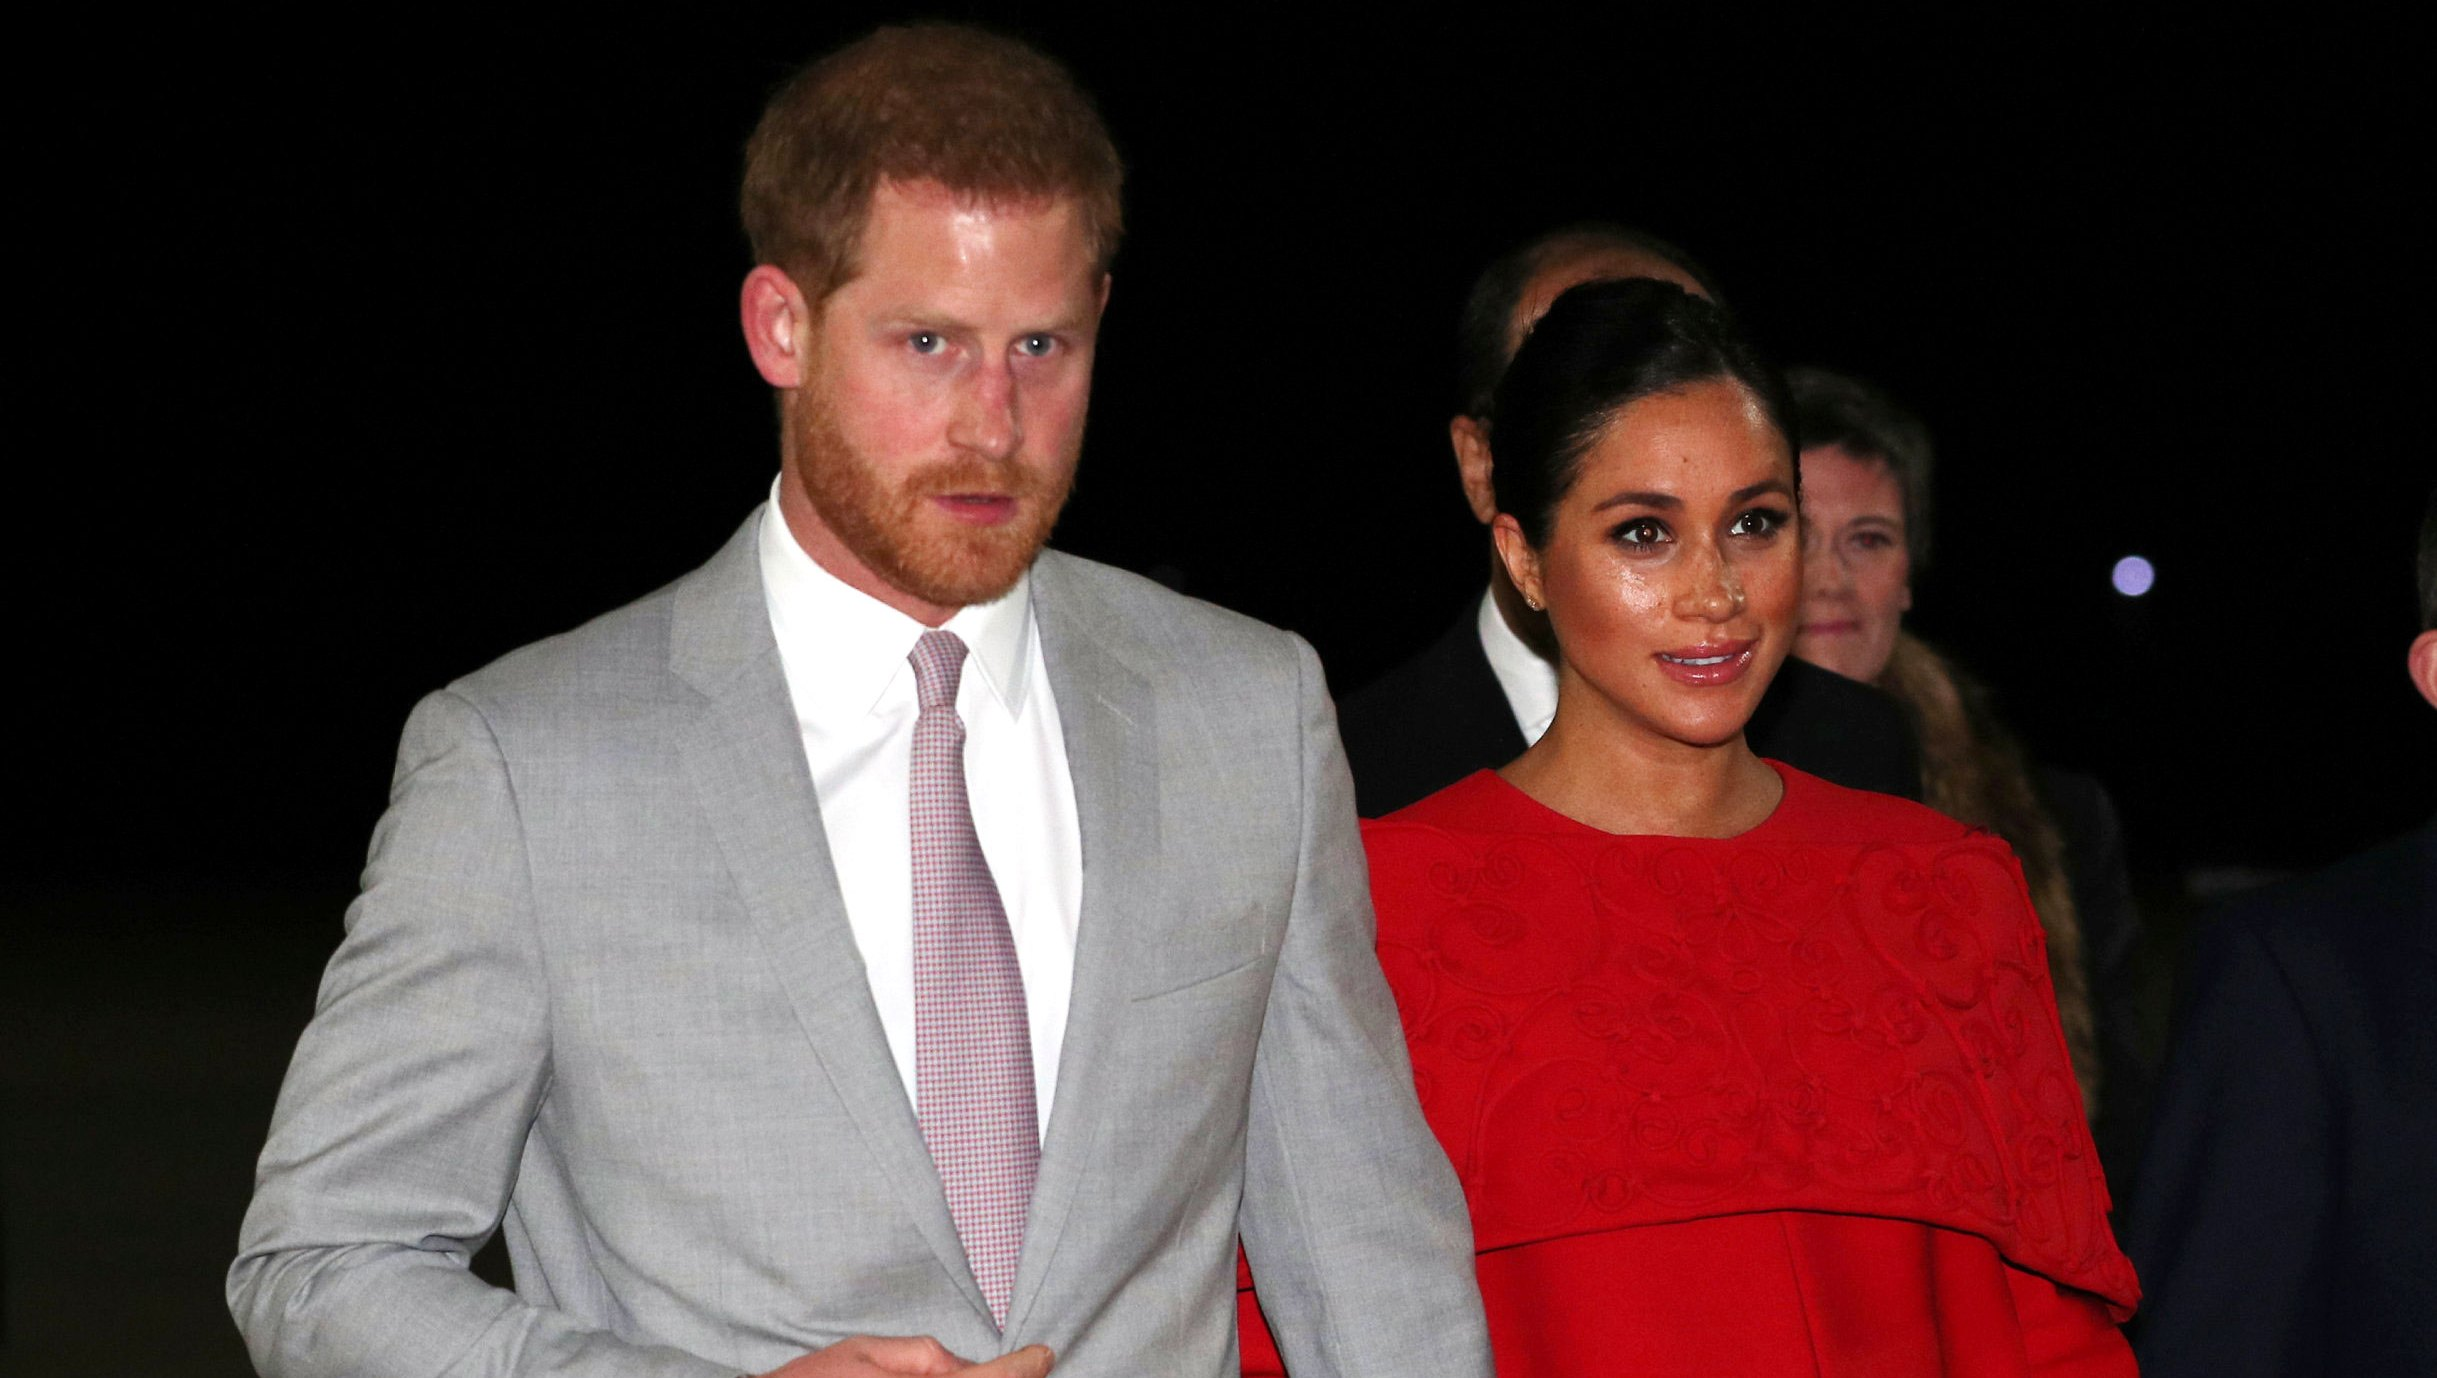 Duchess Meghan and Prince Harry Arrive in Morocco